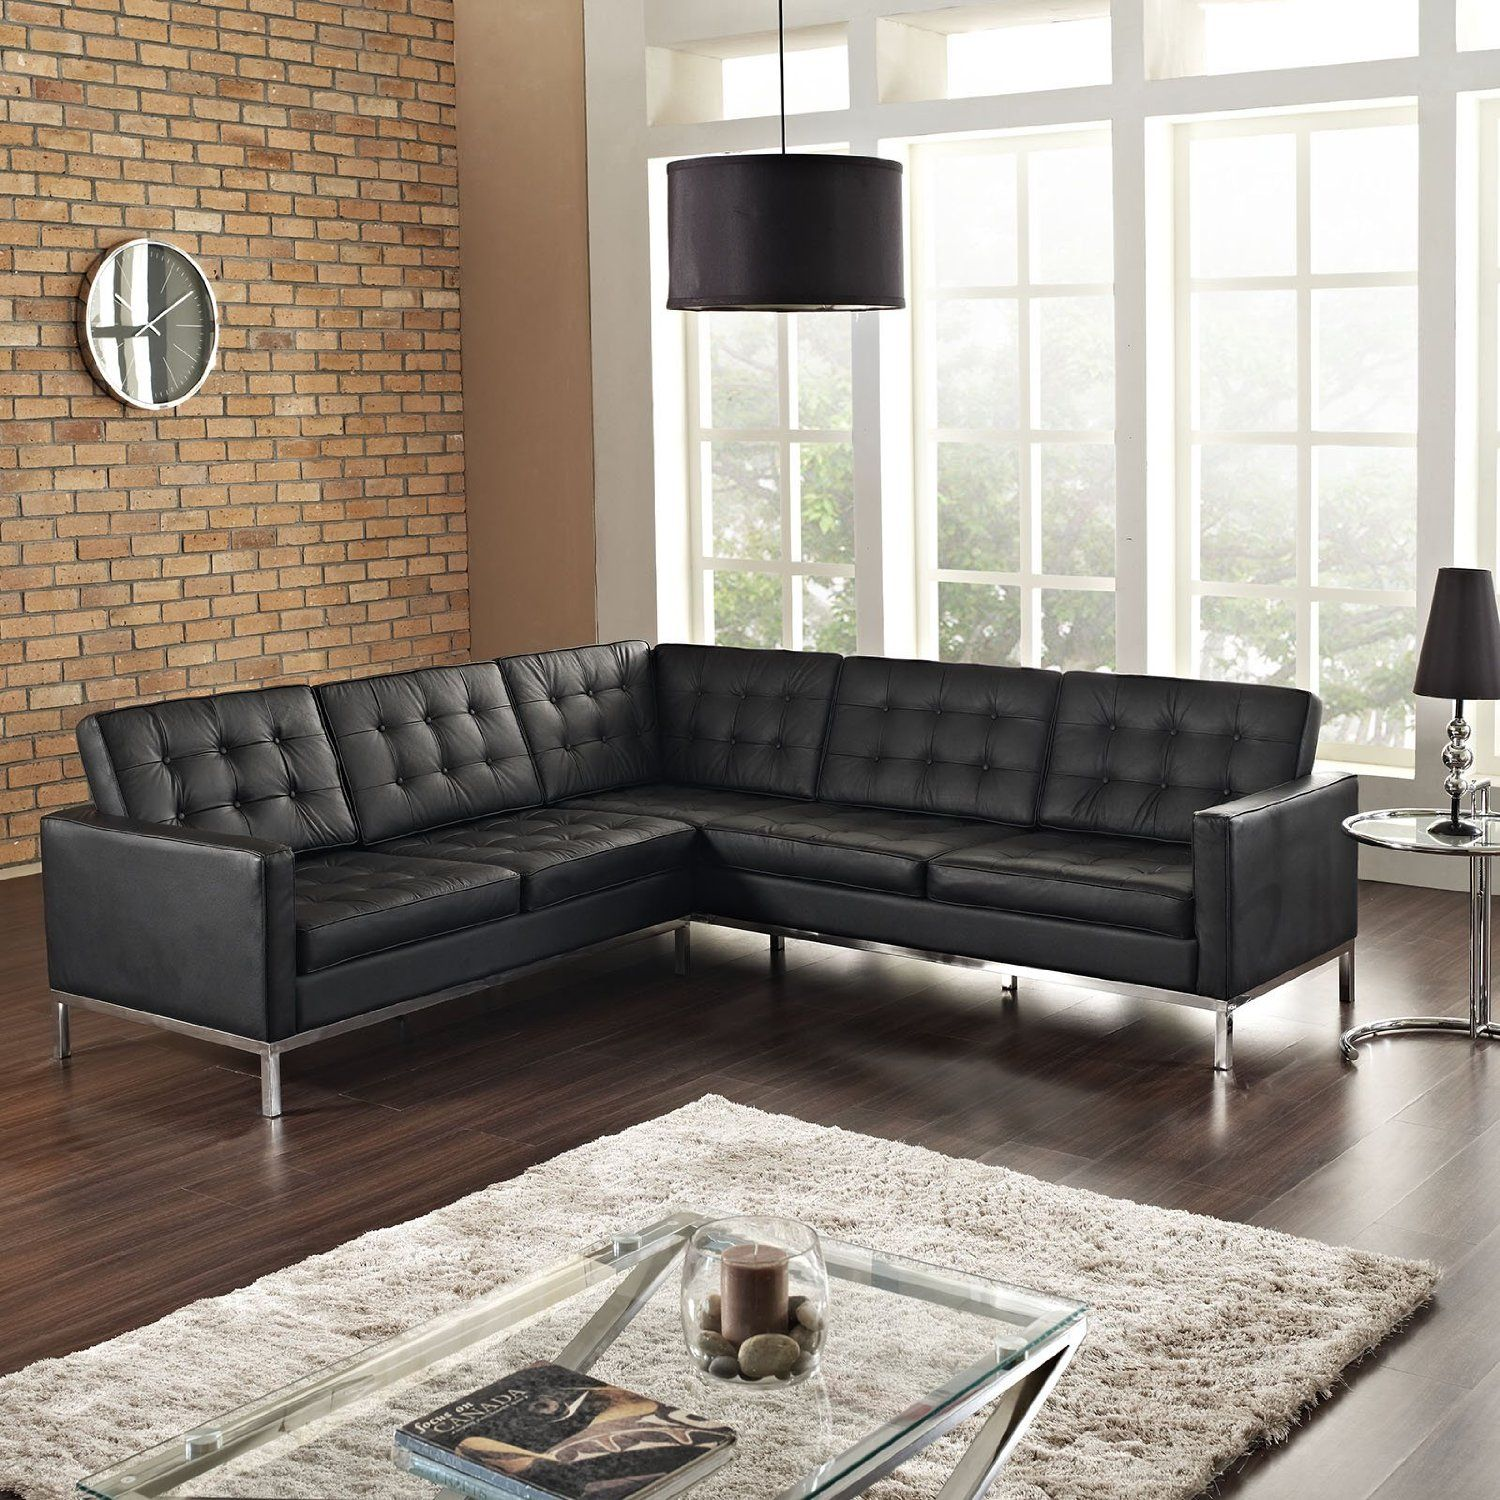 Pretty Black Semi Leather Sectional L Shaped Couch 2 Pieces With Stainless  Steel Polished Leg On